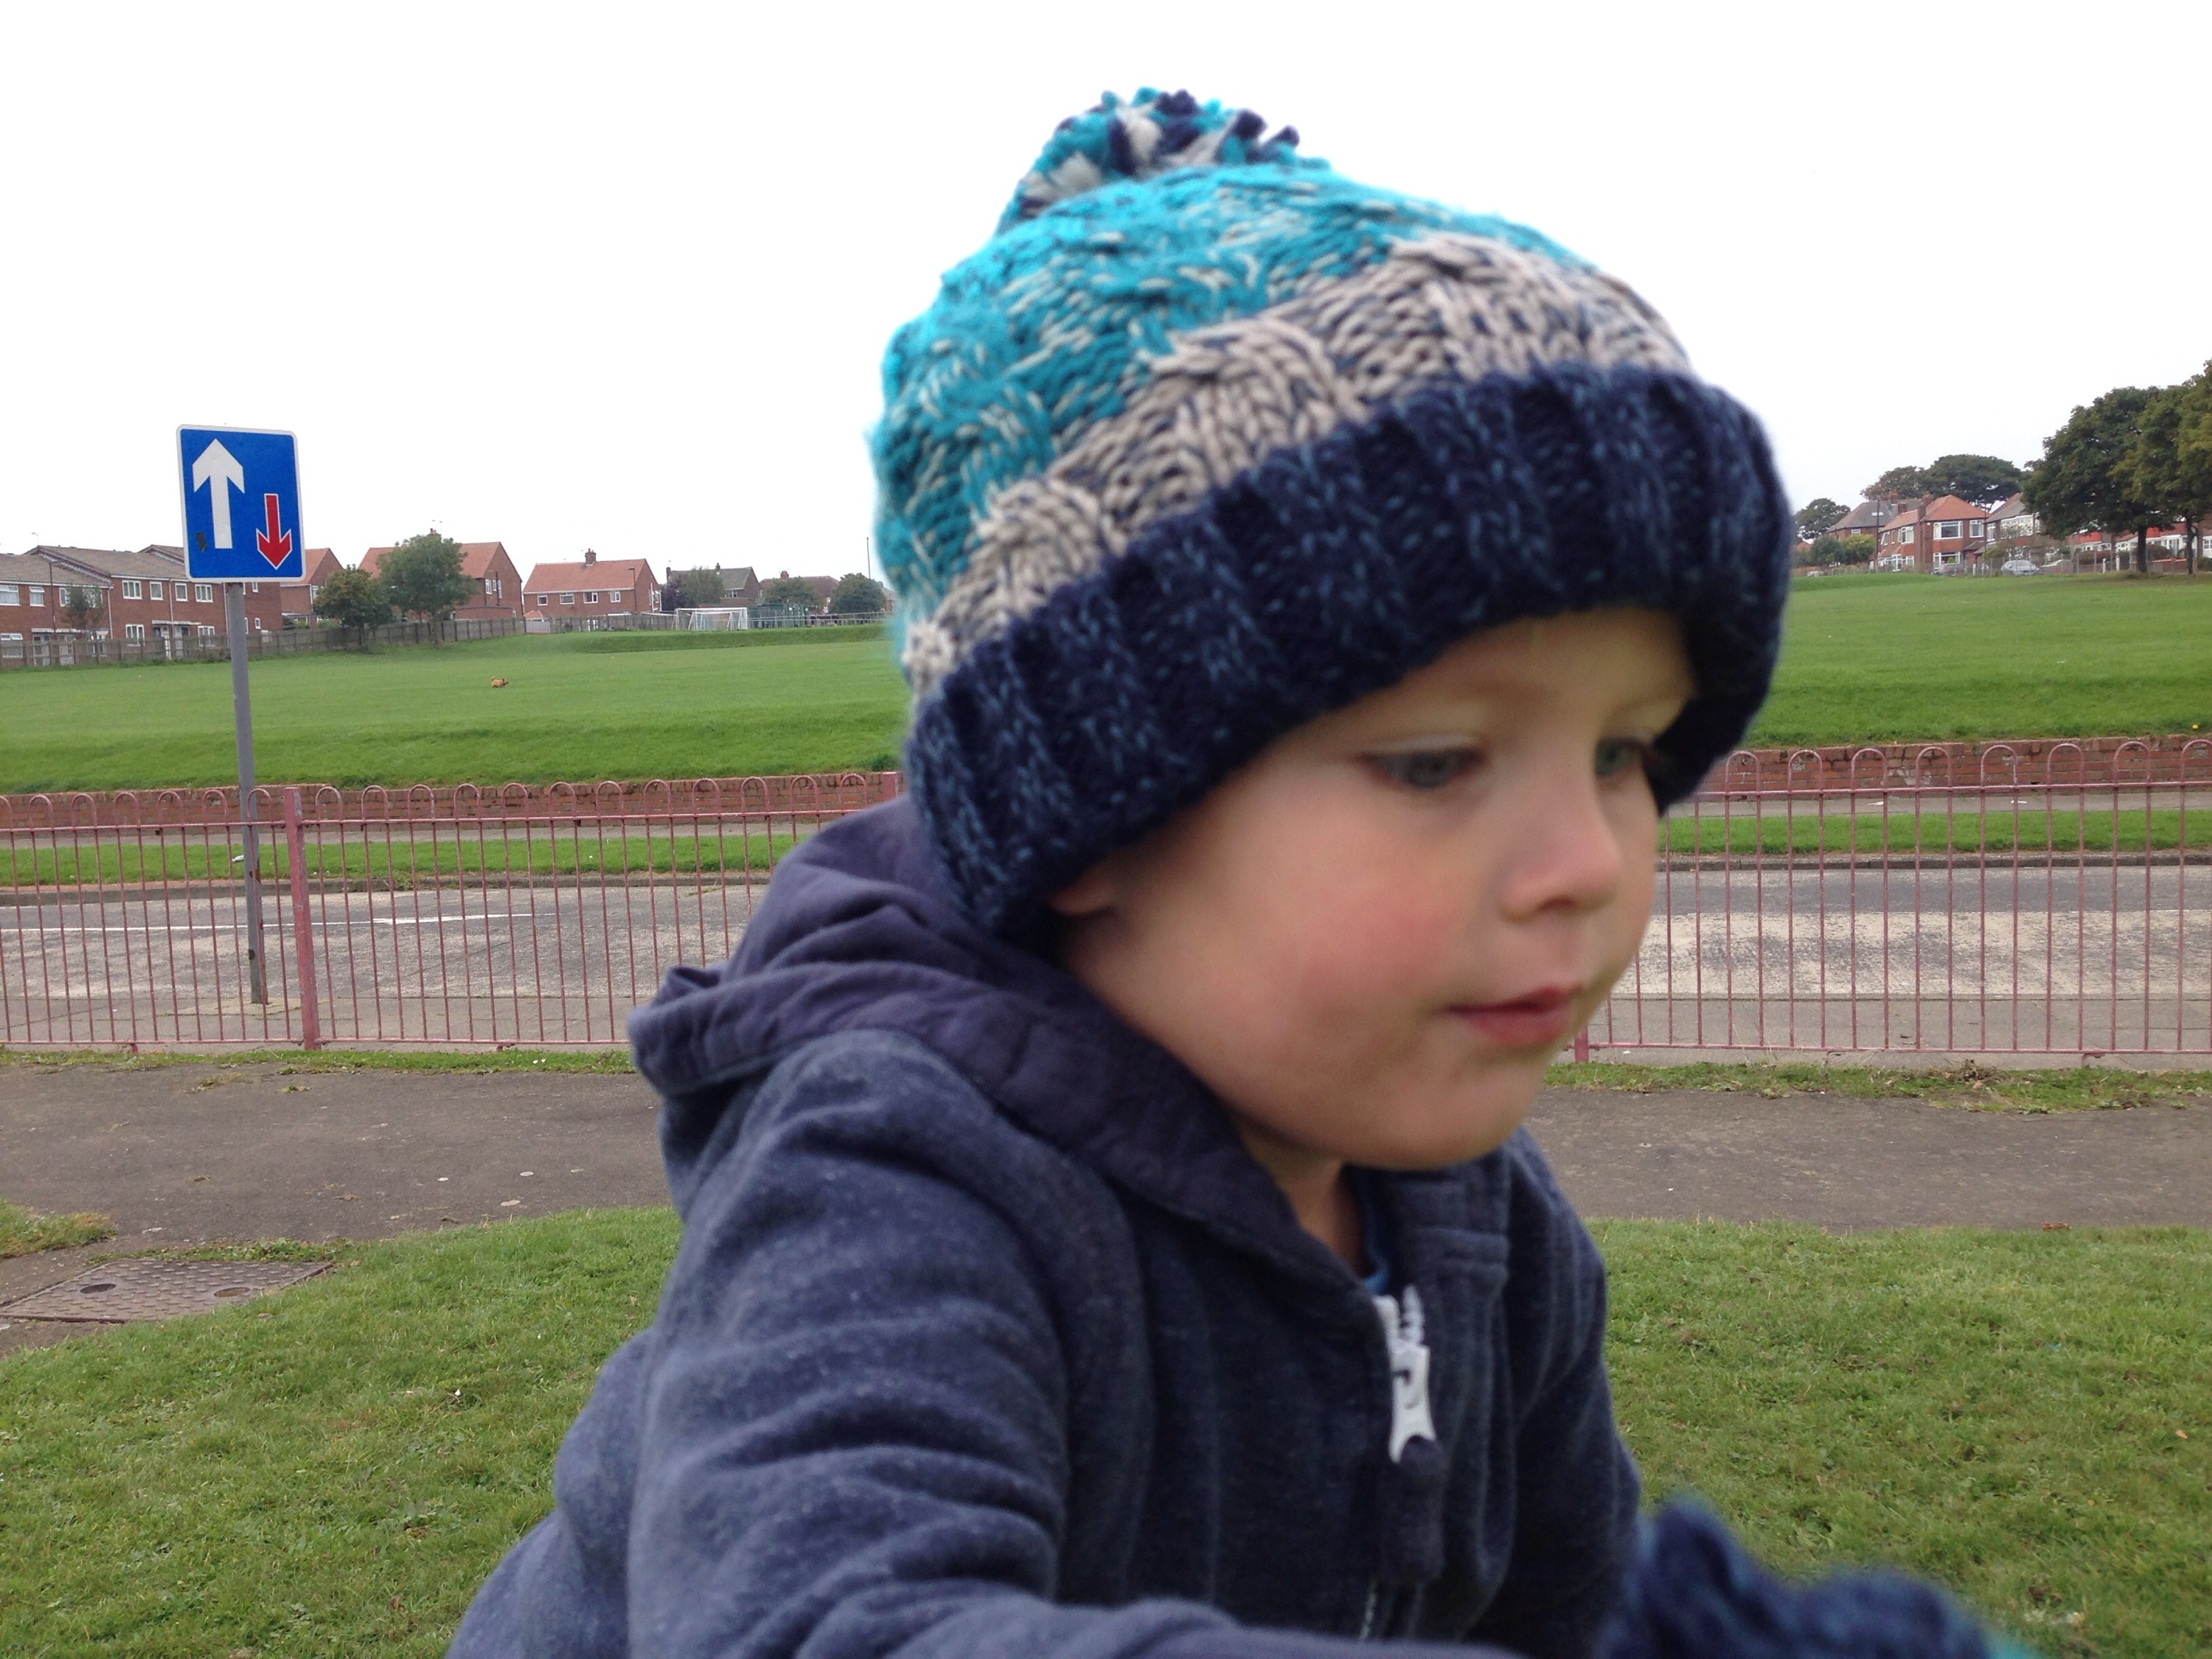 Playgrounds in North Tyneside – Links Road Playsite